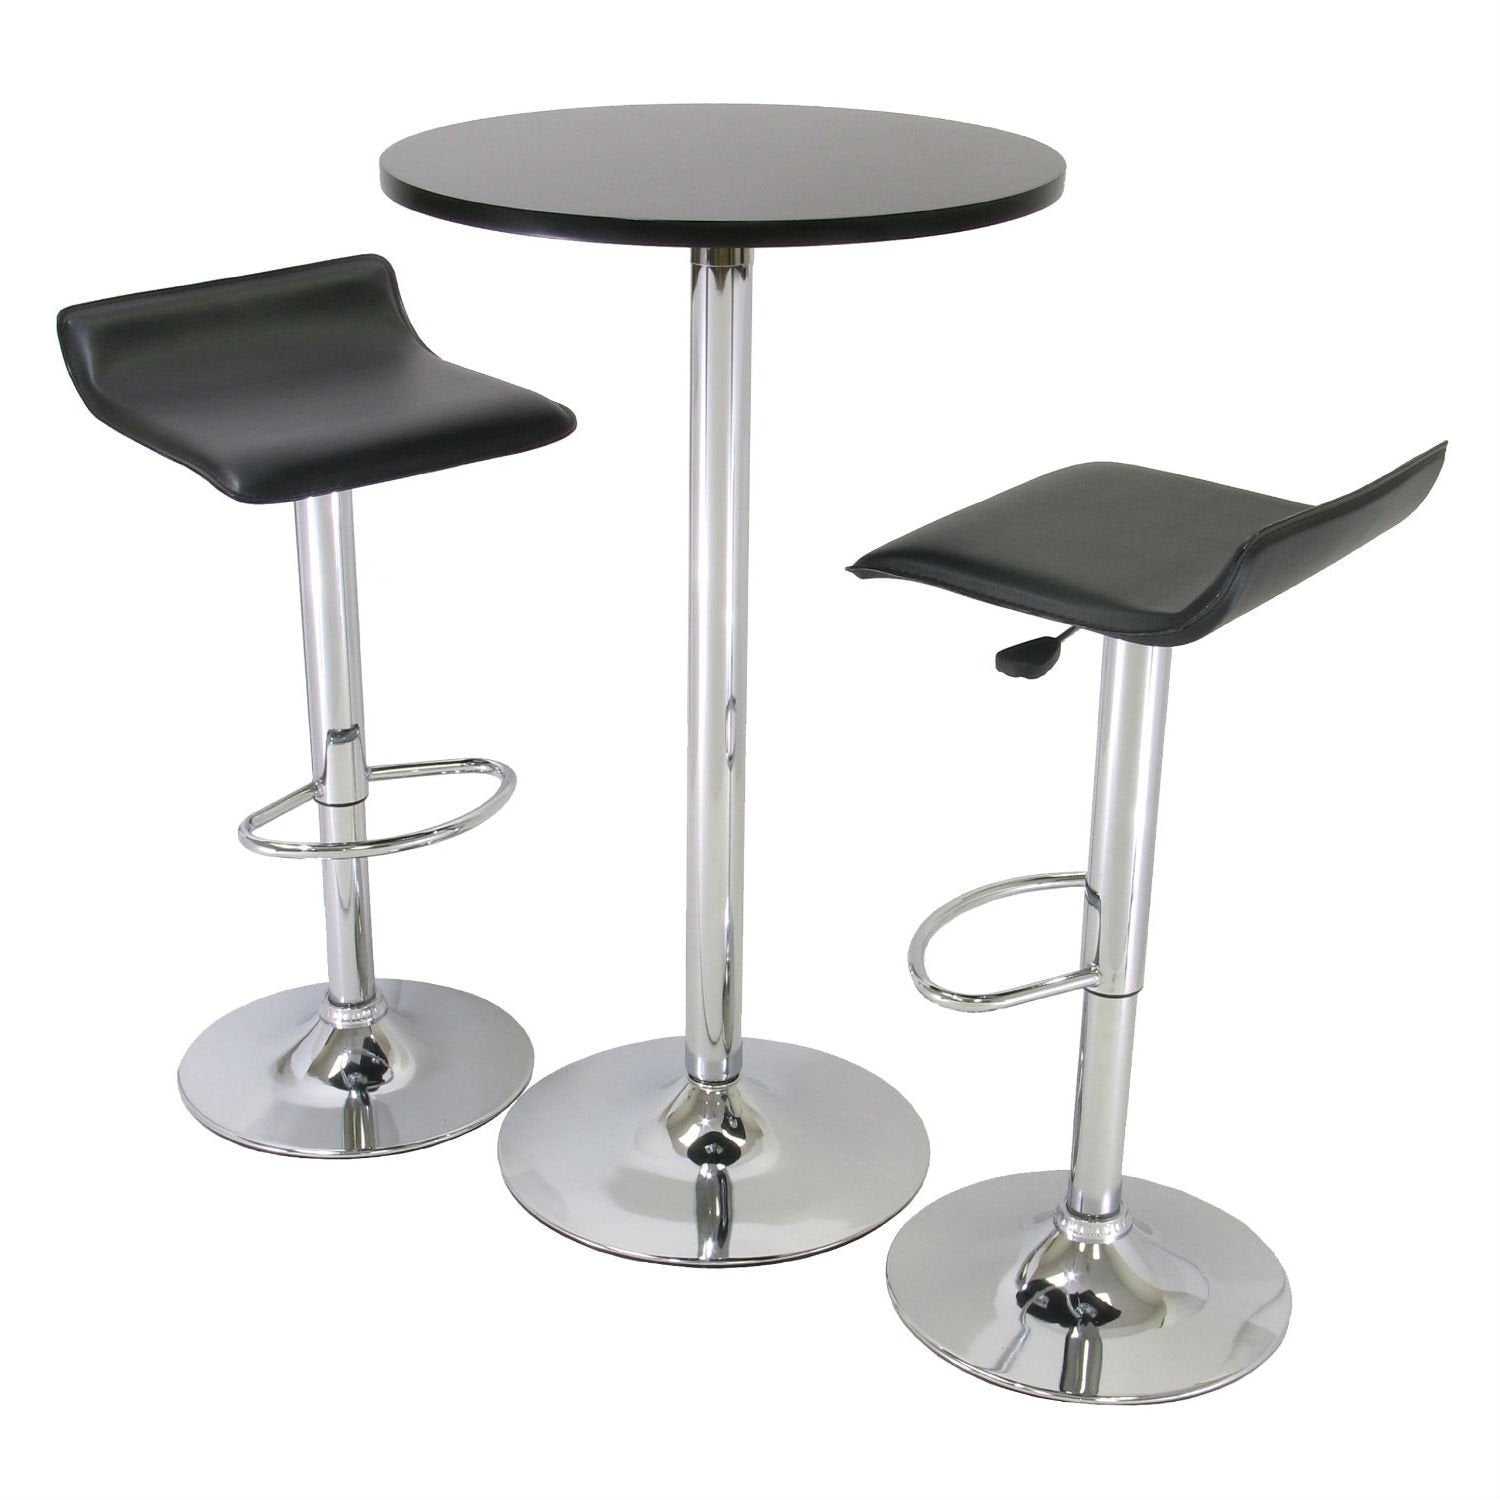 Meinir Dining Set (3-Piece).